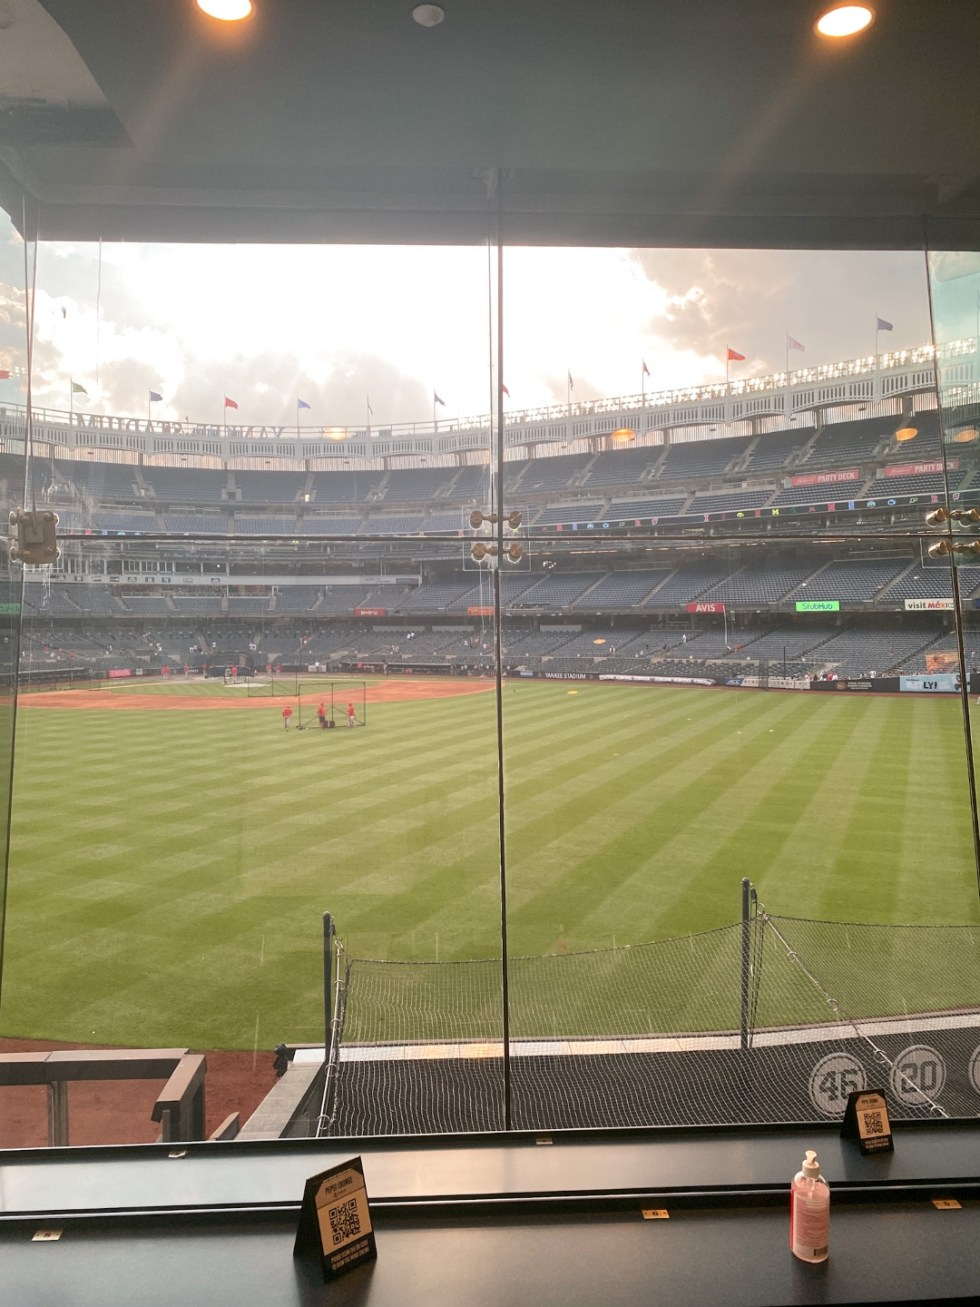 NYC Summer Weekend: Things to Do in NYC in the Summer - I'm Fixin' To - @imfixintoblog   NYC Summer Weekend by popular NC travel blog, I'm Fixin' To: image of Yankee Stadium.